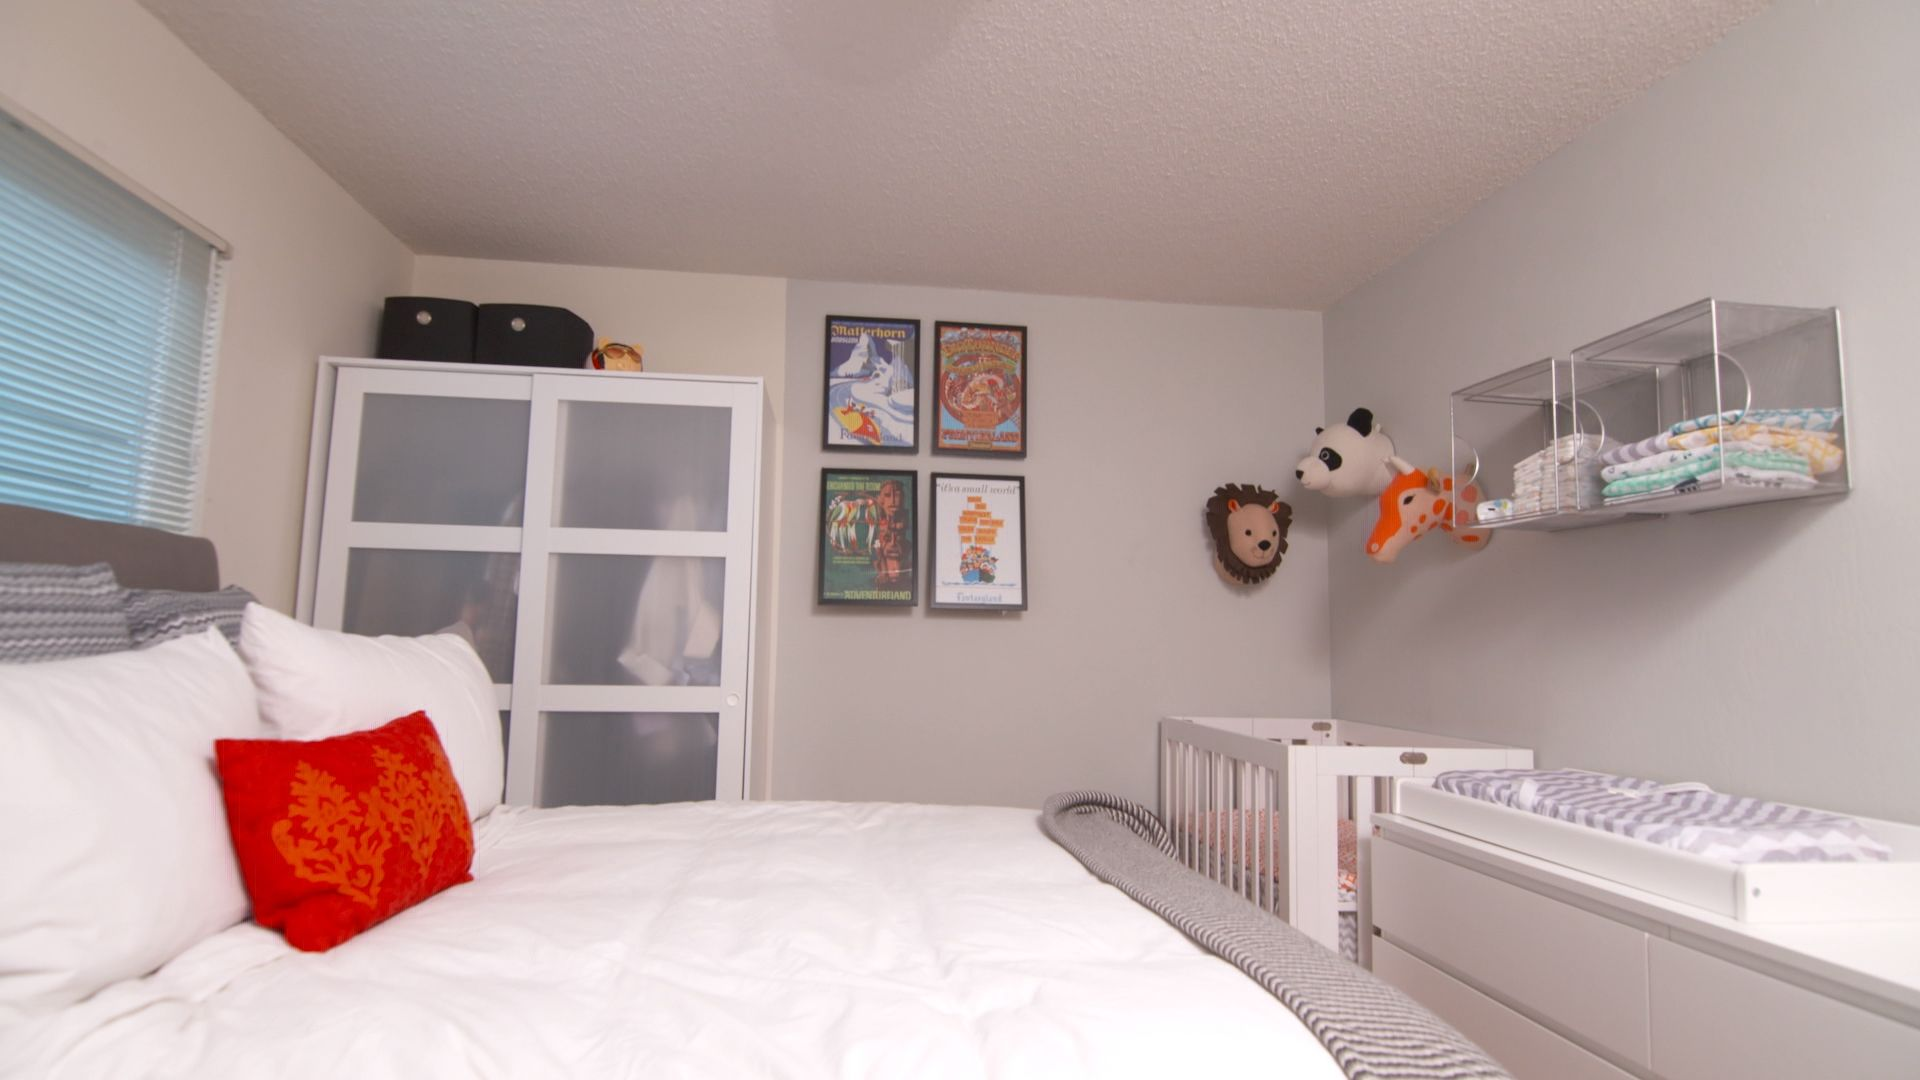 Master Bedroom Nook Ideas creating a nursery nook in your master bedroom | nursery nook